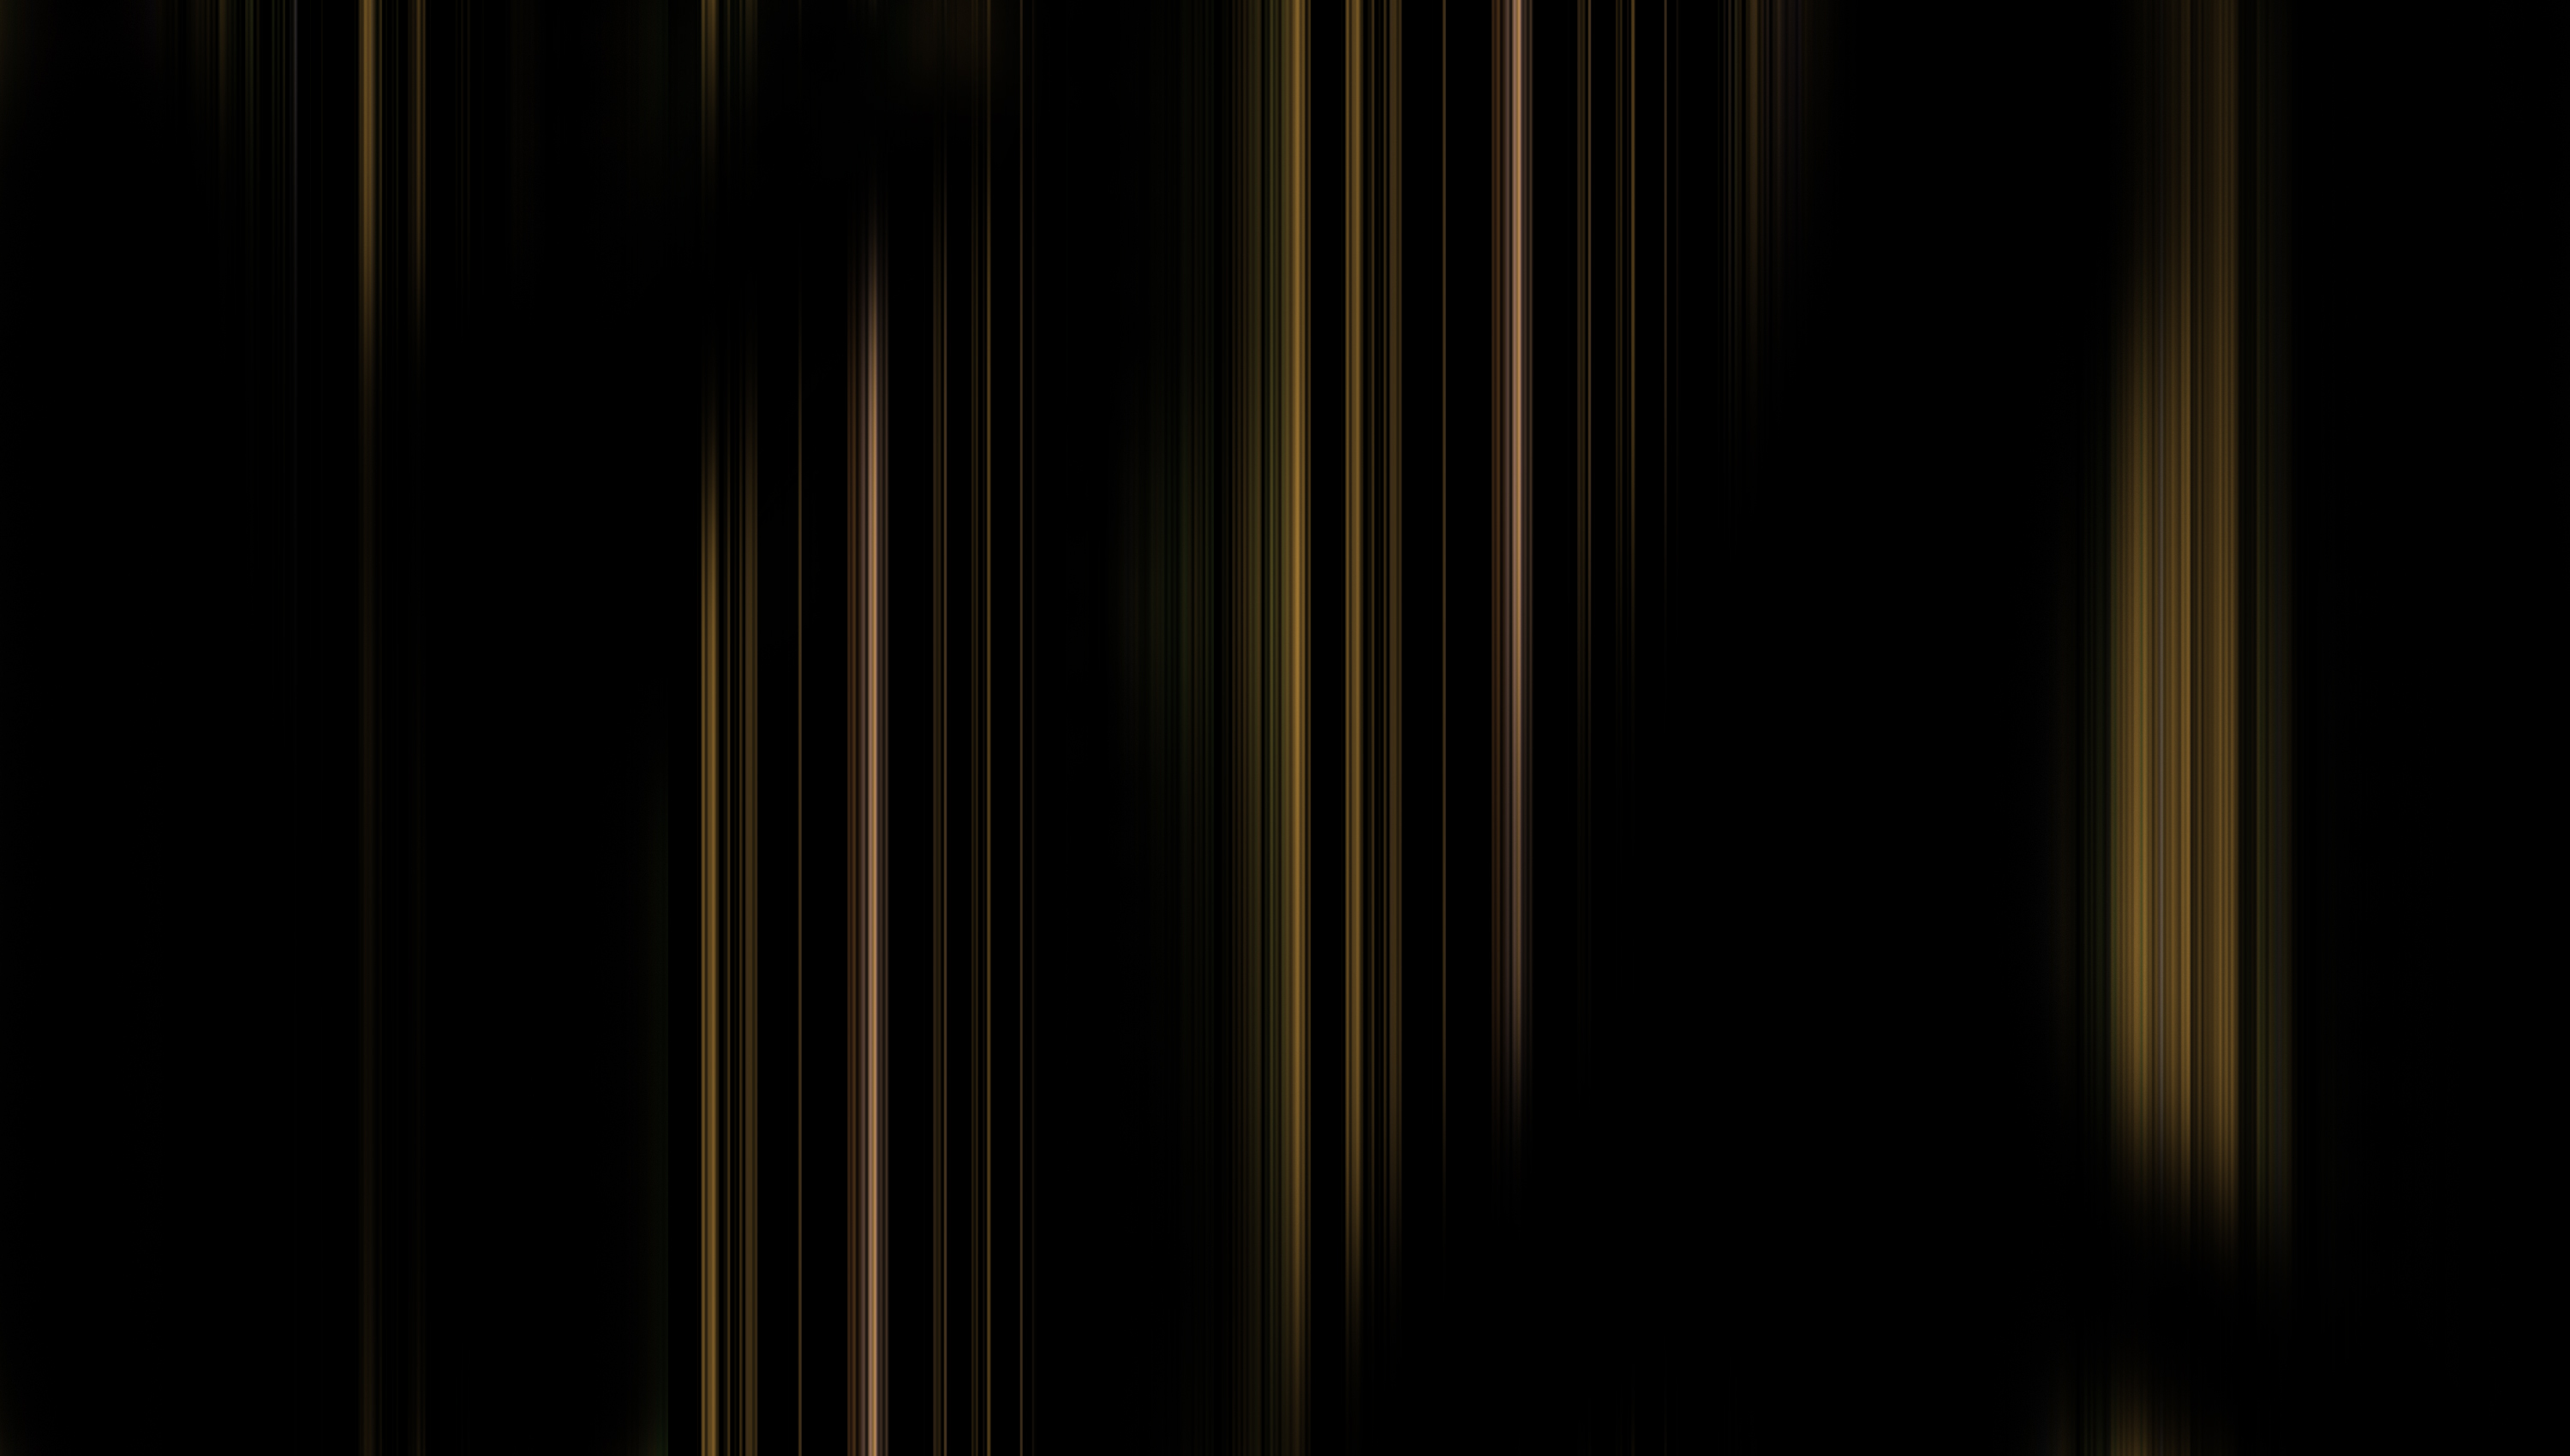 Download Wallpaper Solid Android Android Black